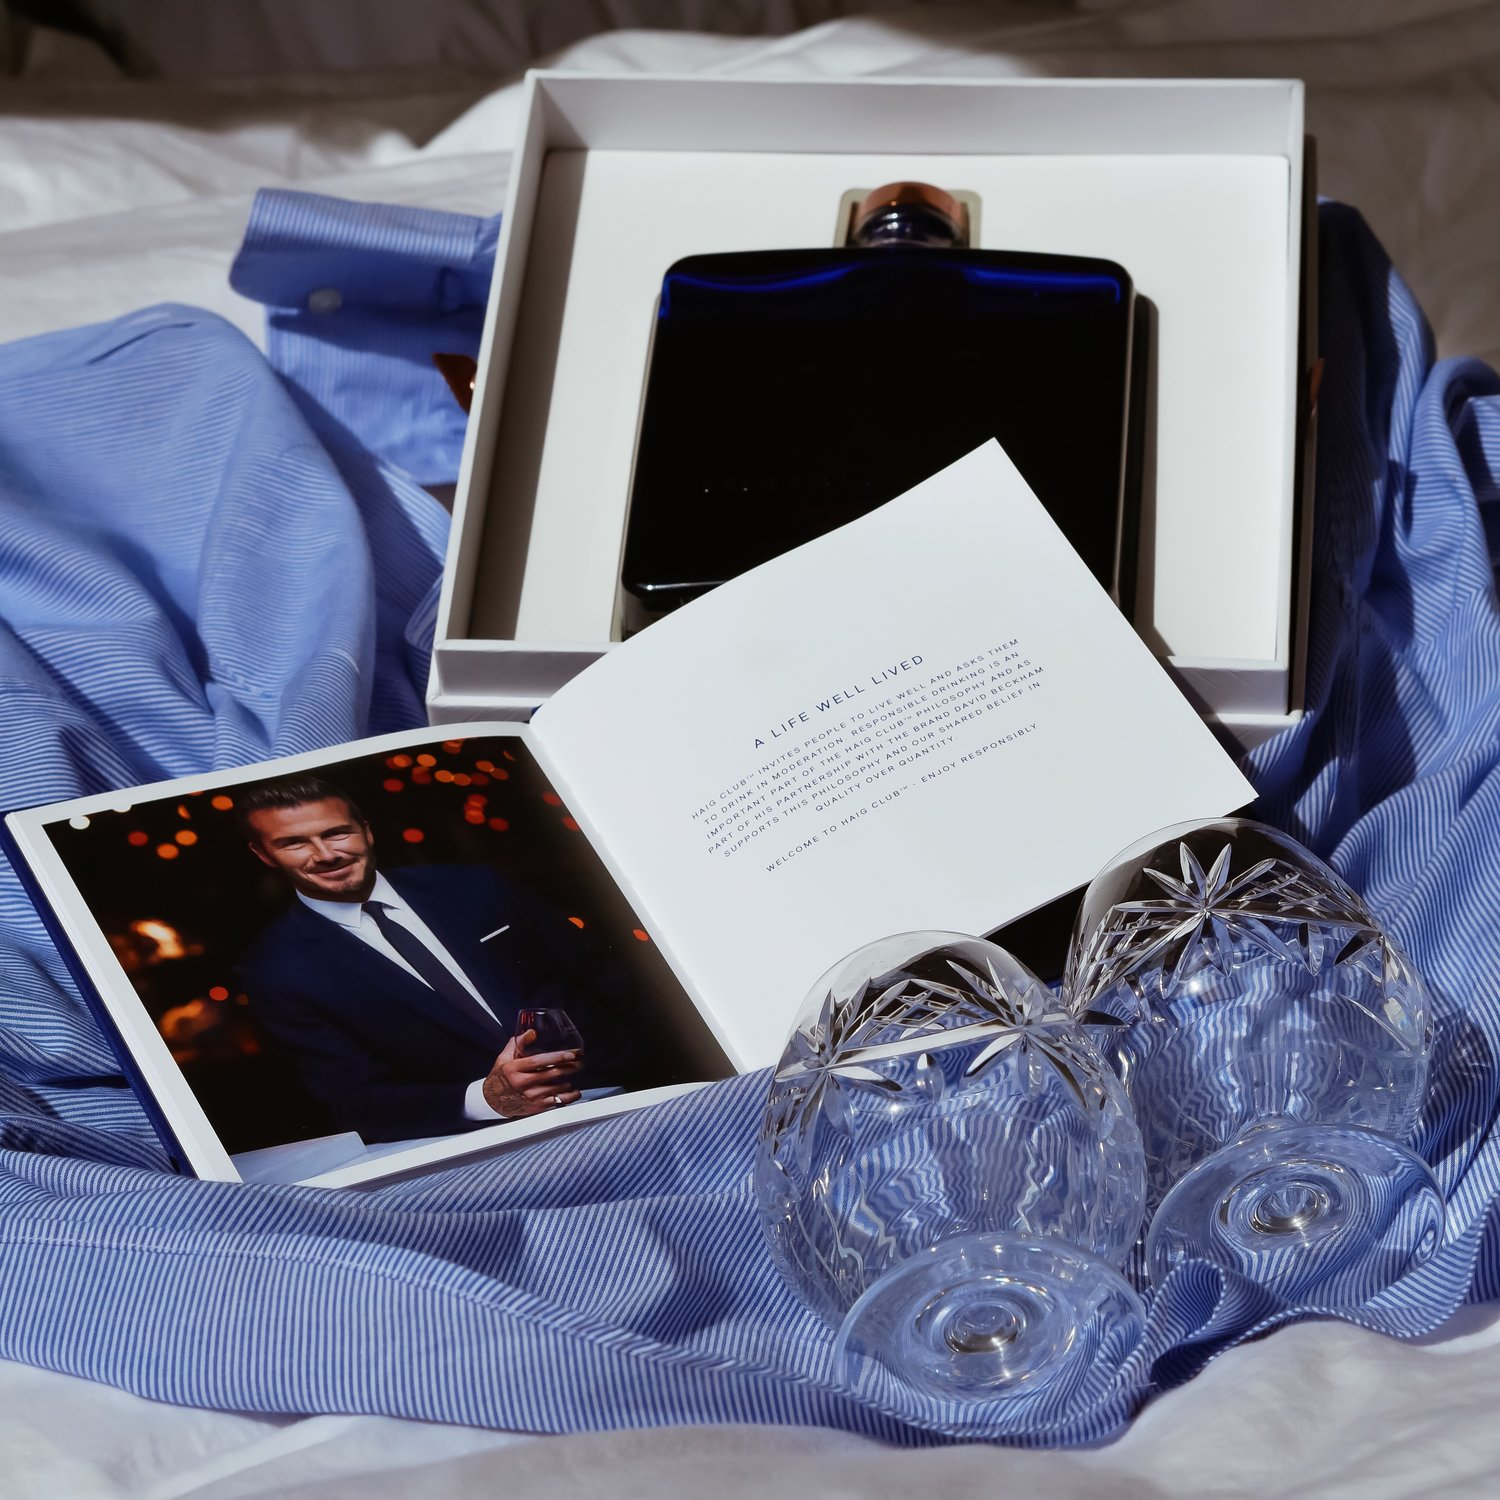 PRESENTS FOR MEN, DAVID BECKHAM HAIGH WHISKY, HAIG WHISKY, DAVID BECKAHM, ROTARY, ROTARY, FATHERS DAY GIFT GUIDE